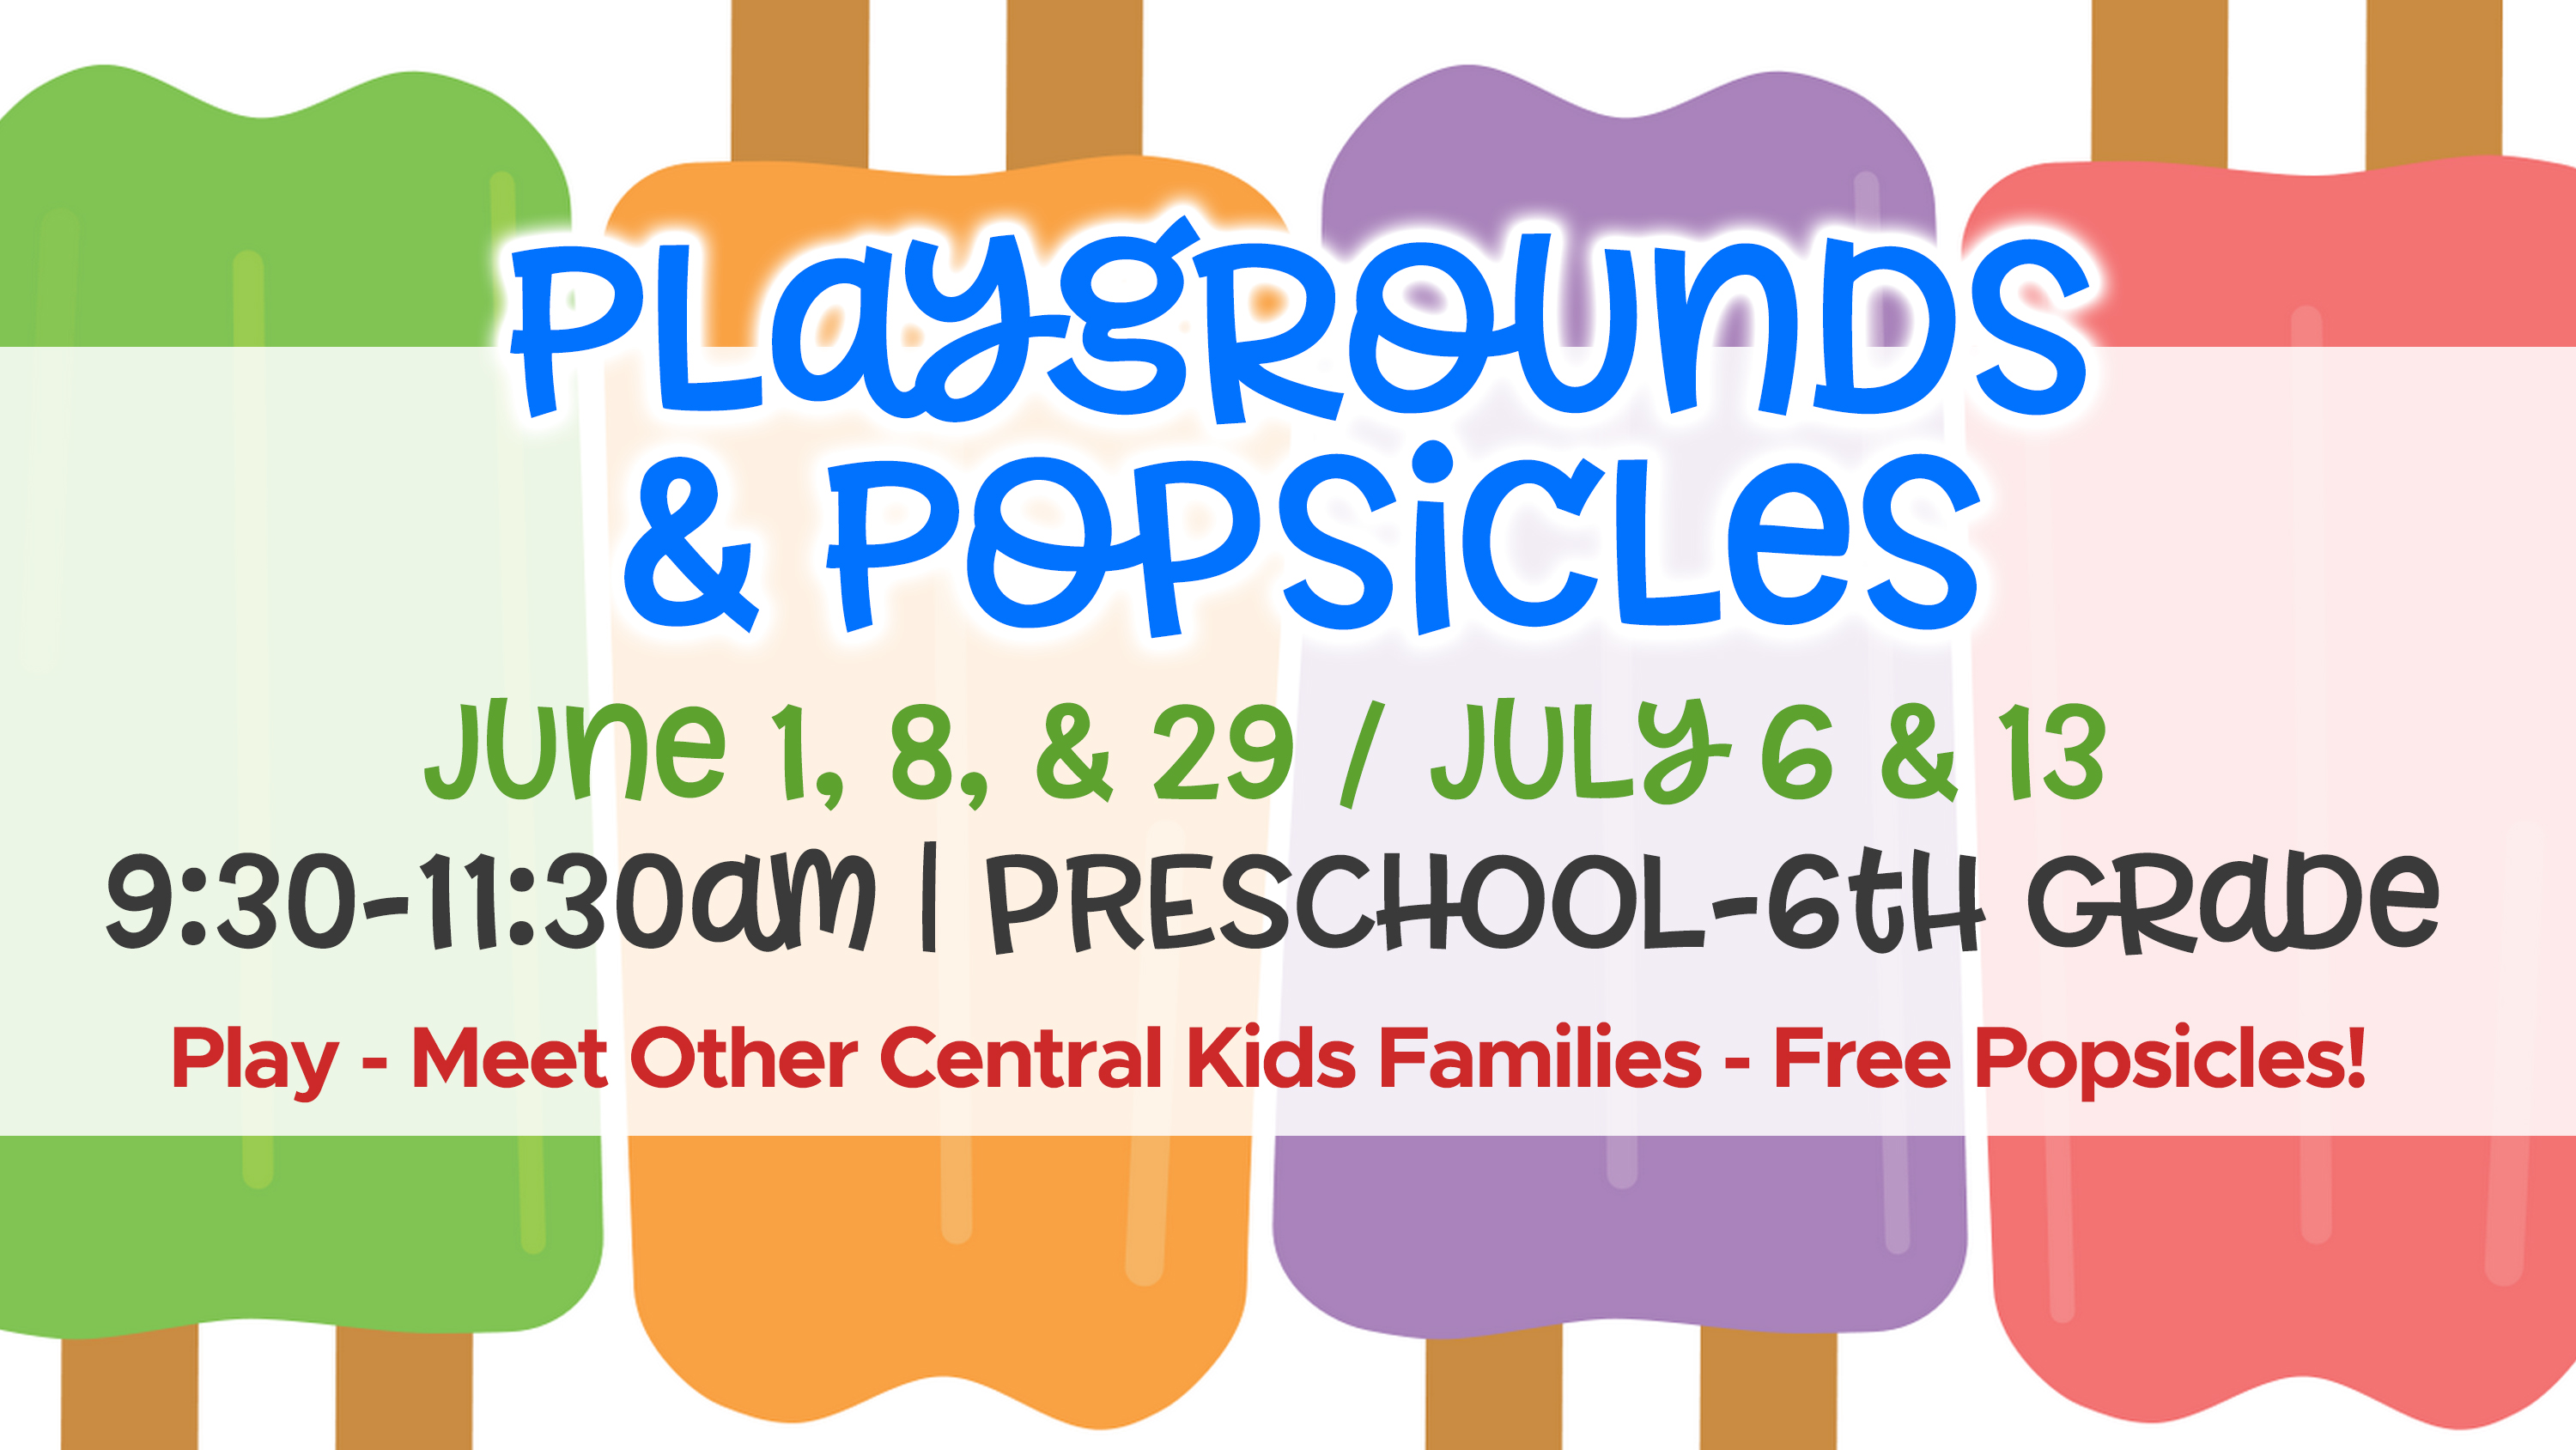 4  Playgrounds and Popsicles